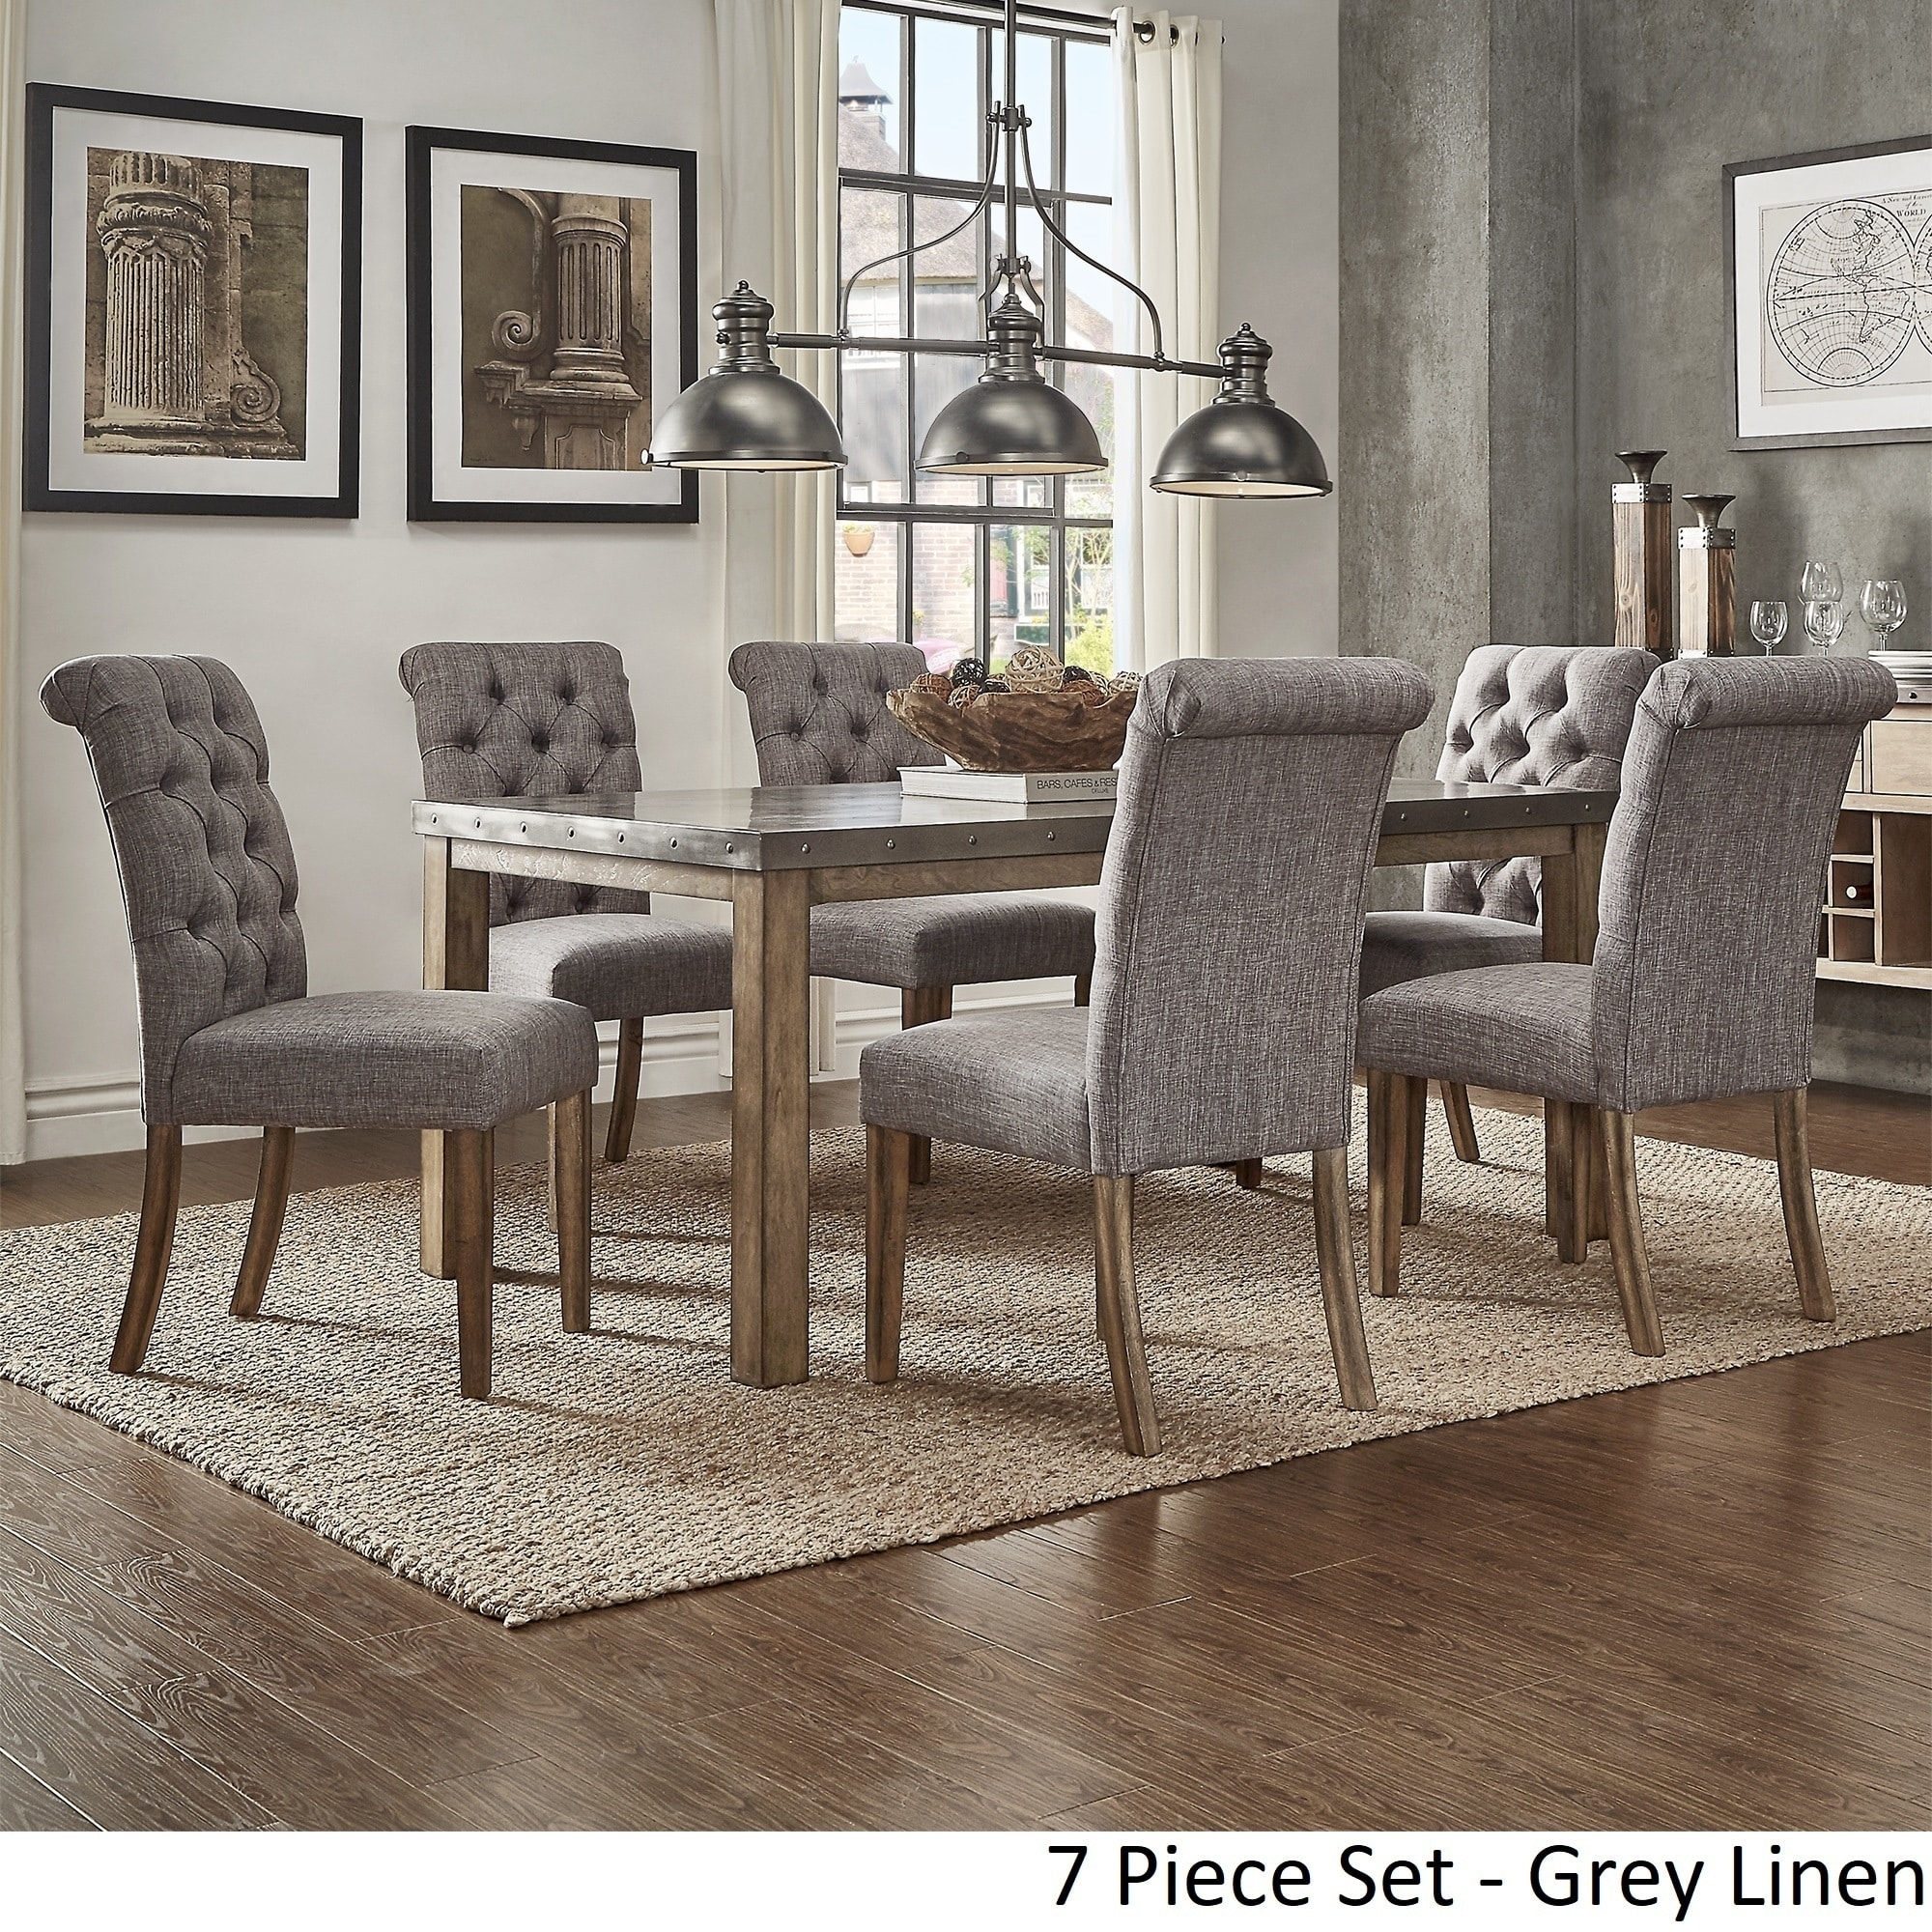 Cassidy Stainless Steel Top Rectangle Dining Table Setinspire Q Throughout Most Recently Released Candice Ii Extension Rectangle Dining Tables (View 18 of 20)